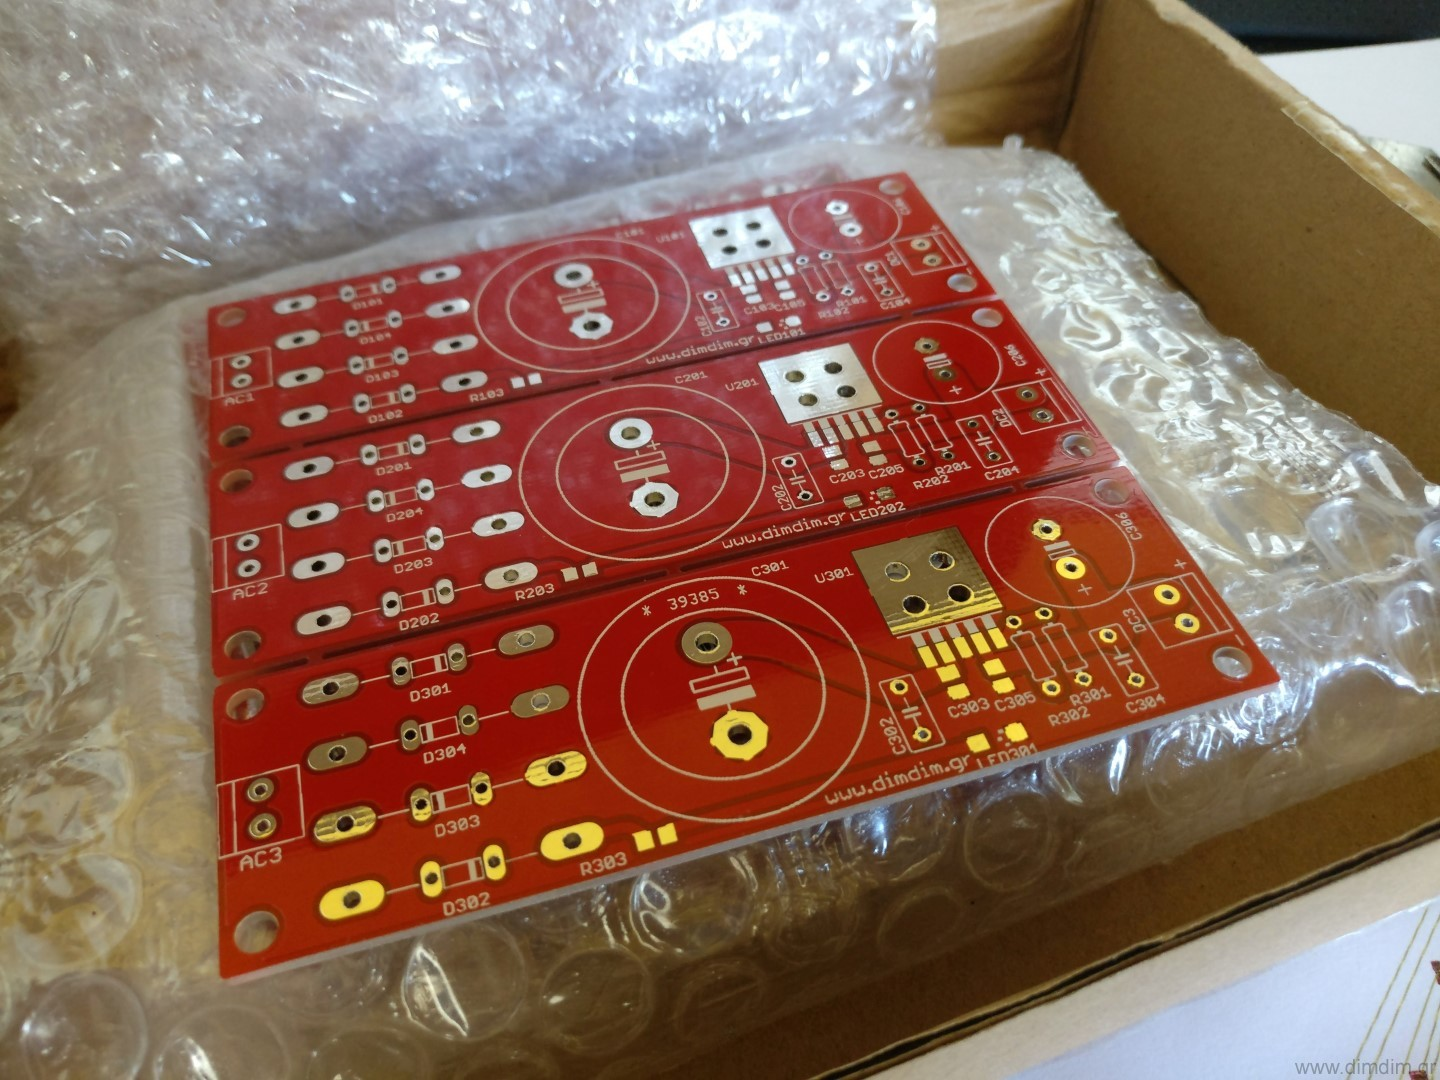 Linear power supply for the Raspberry Pi: is it worth it